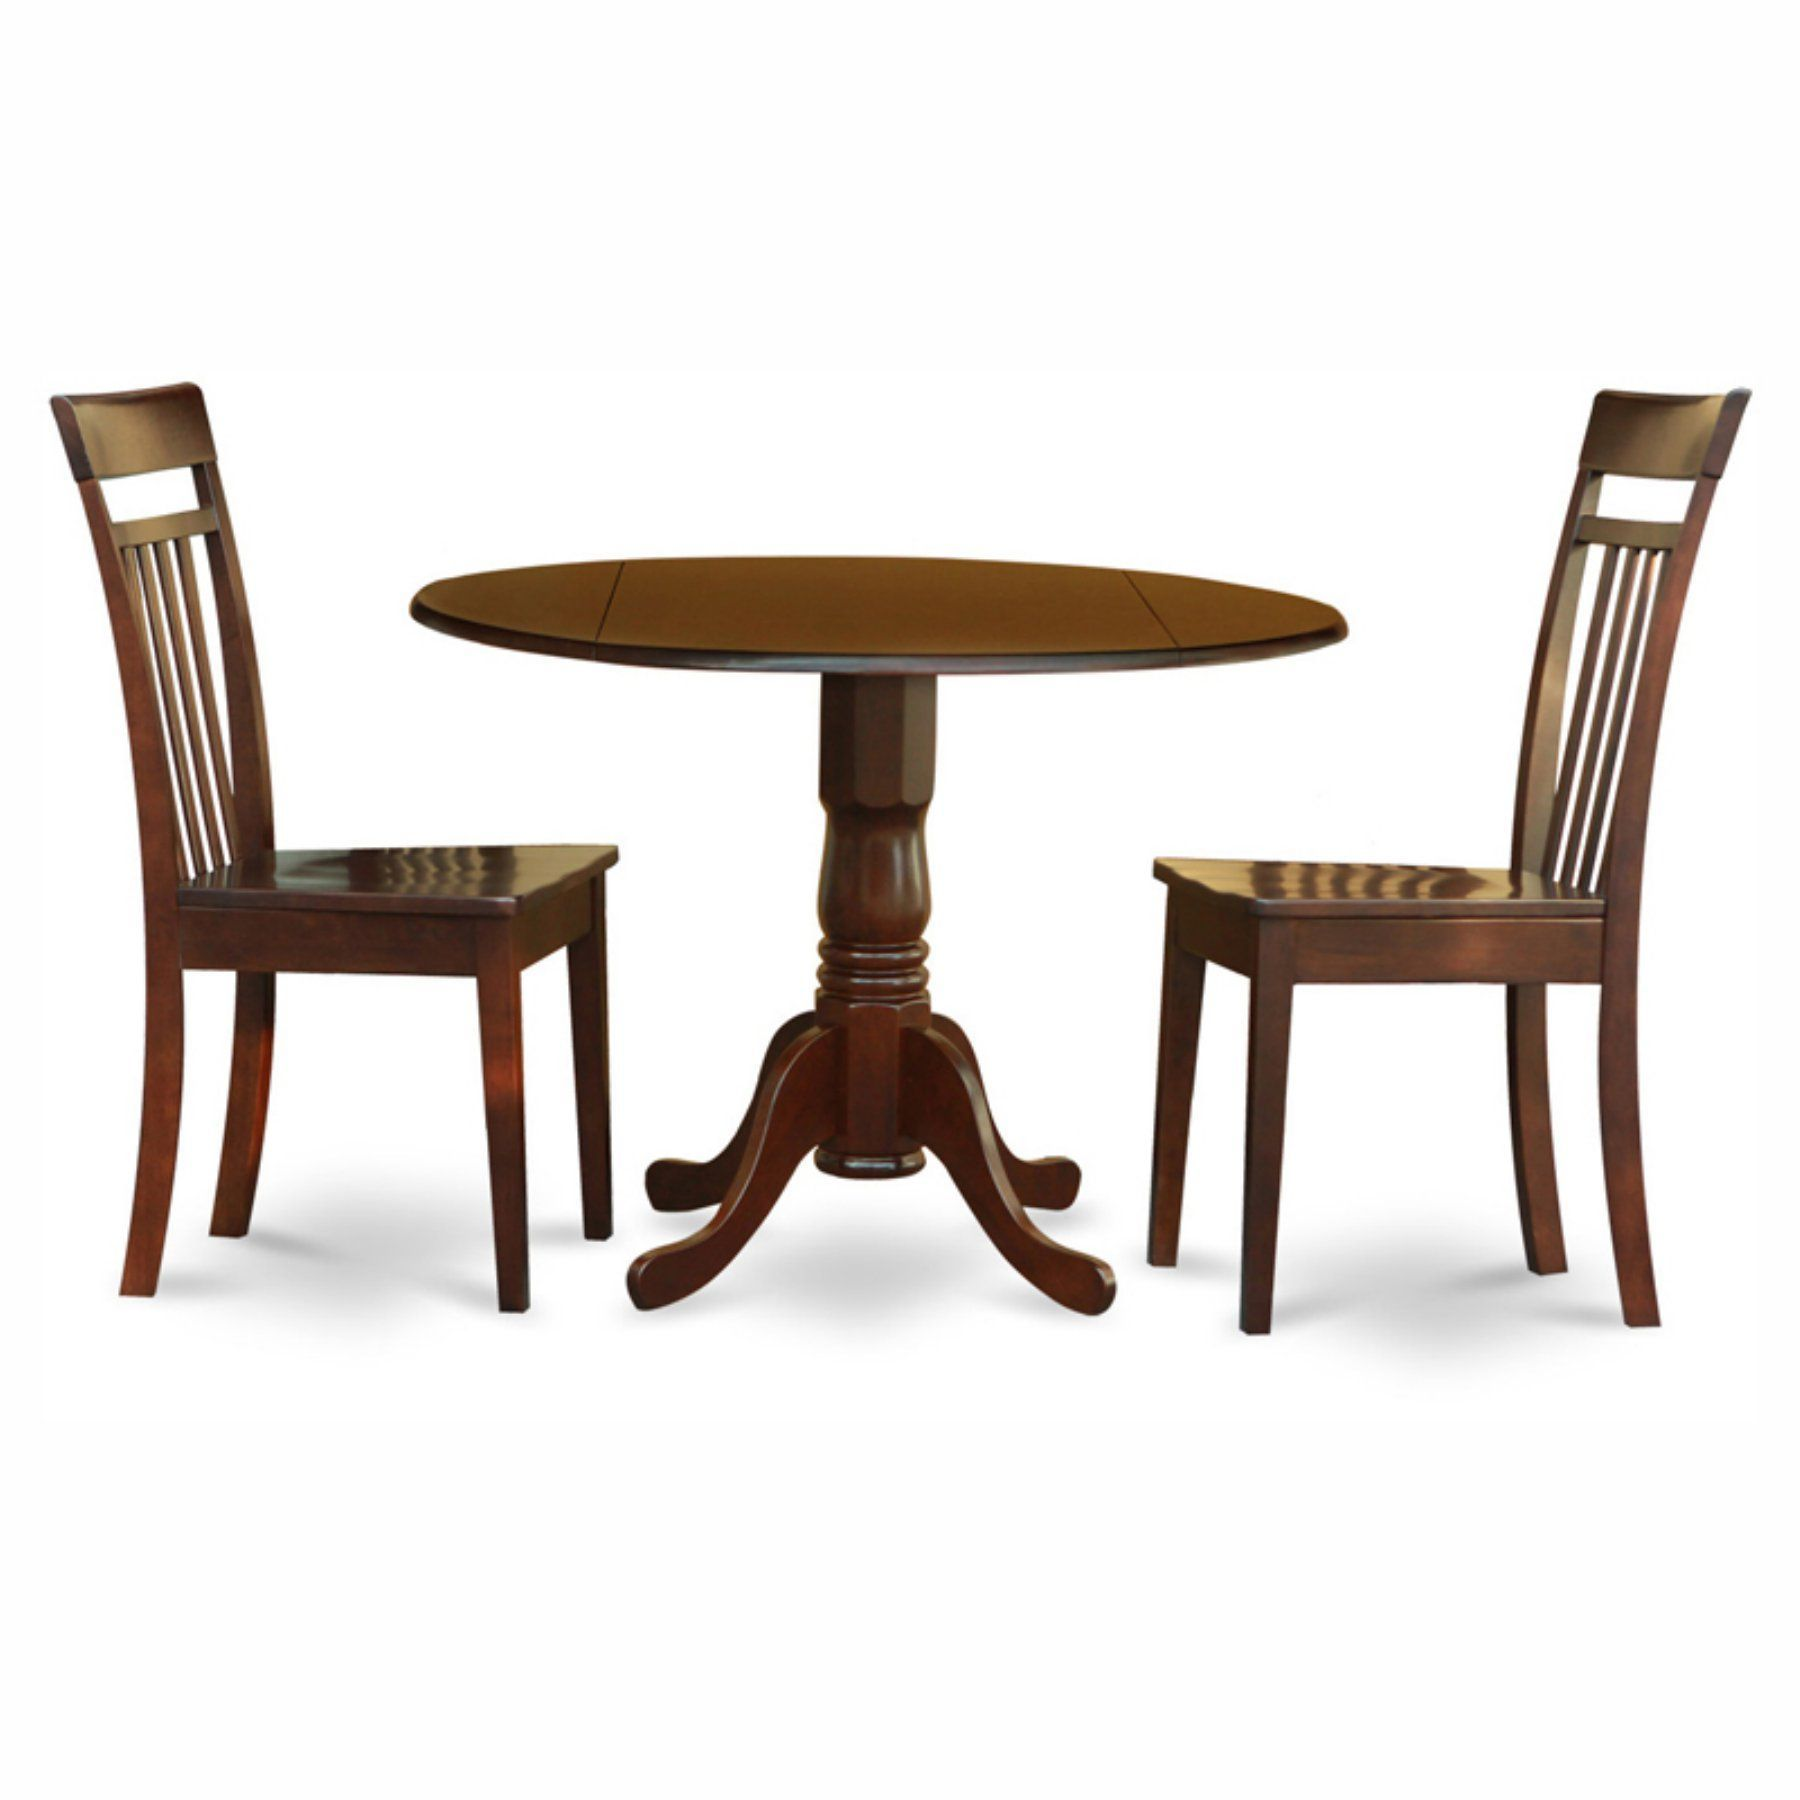 3 piece drop leaf dining set chair east west furniture dublin piece drop leaf dining table set with capri wooden seat chairs